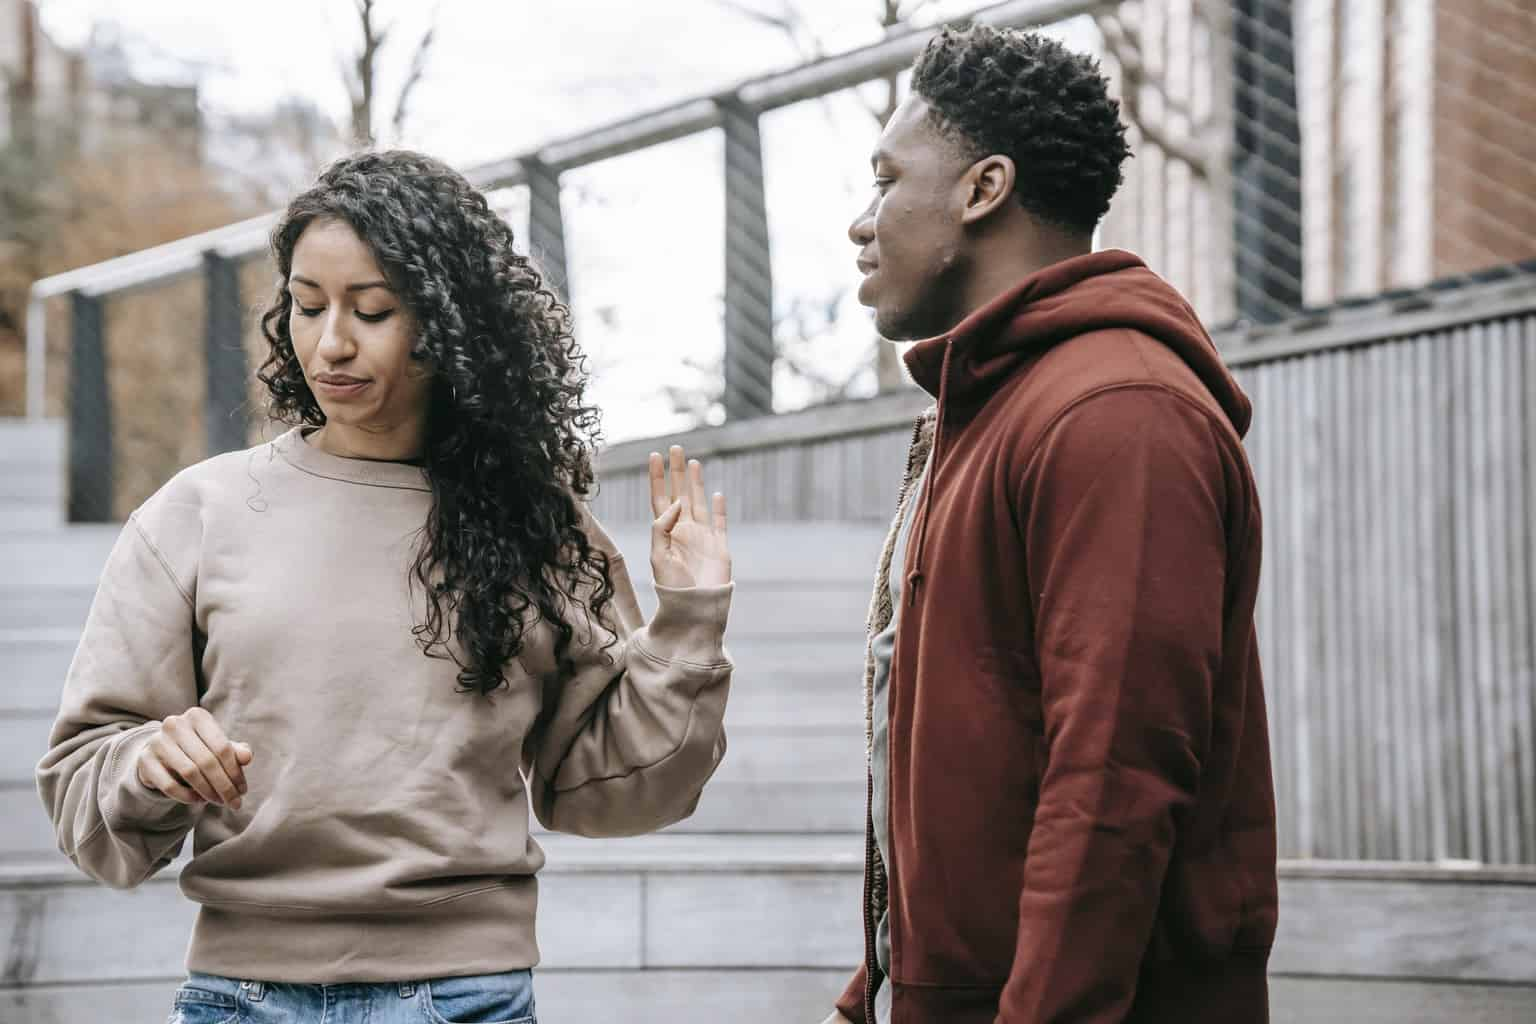 Upset ethnic girlfriend with raised hand and concerned African American boyfriend breaking up on street against metal grid on background